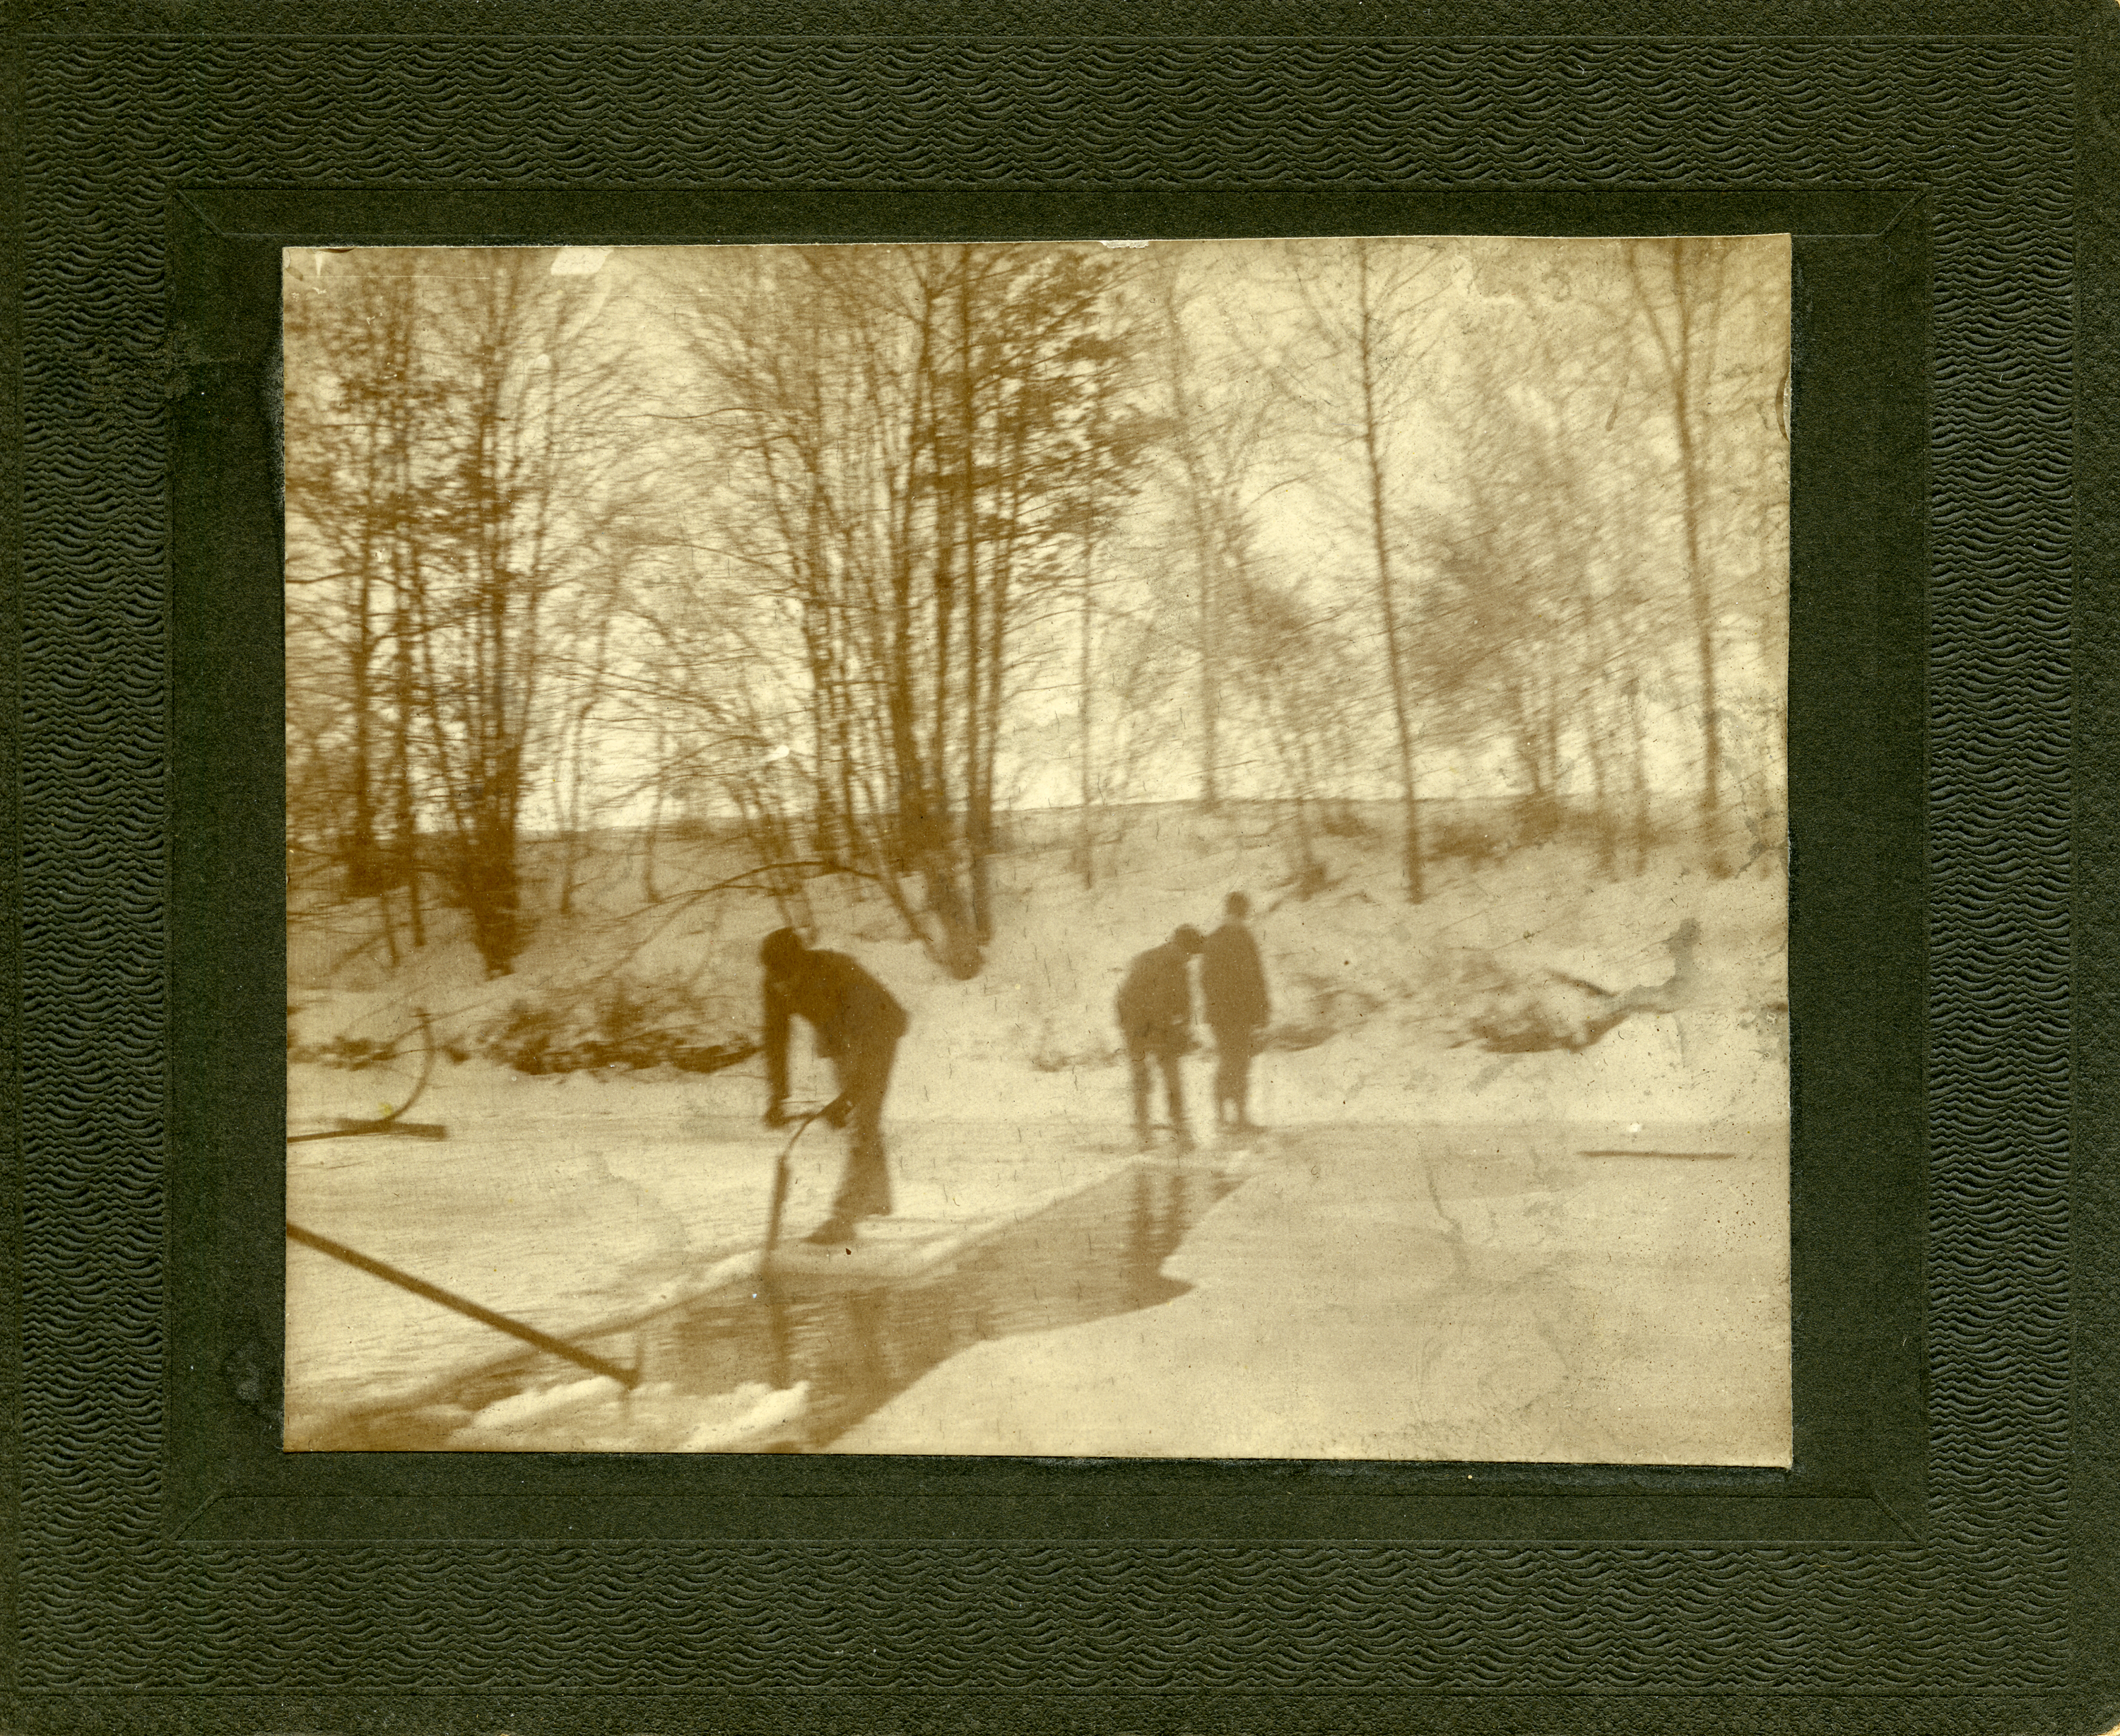 Harvesting Ice on the Red Cedar River, 1900